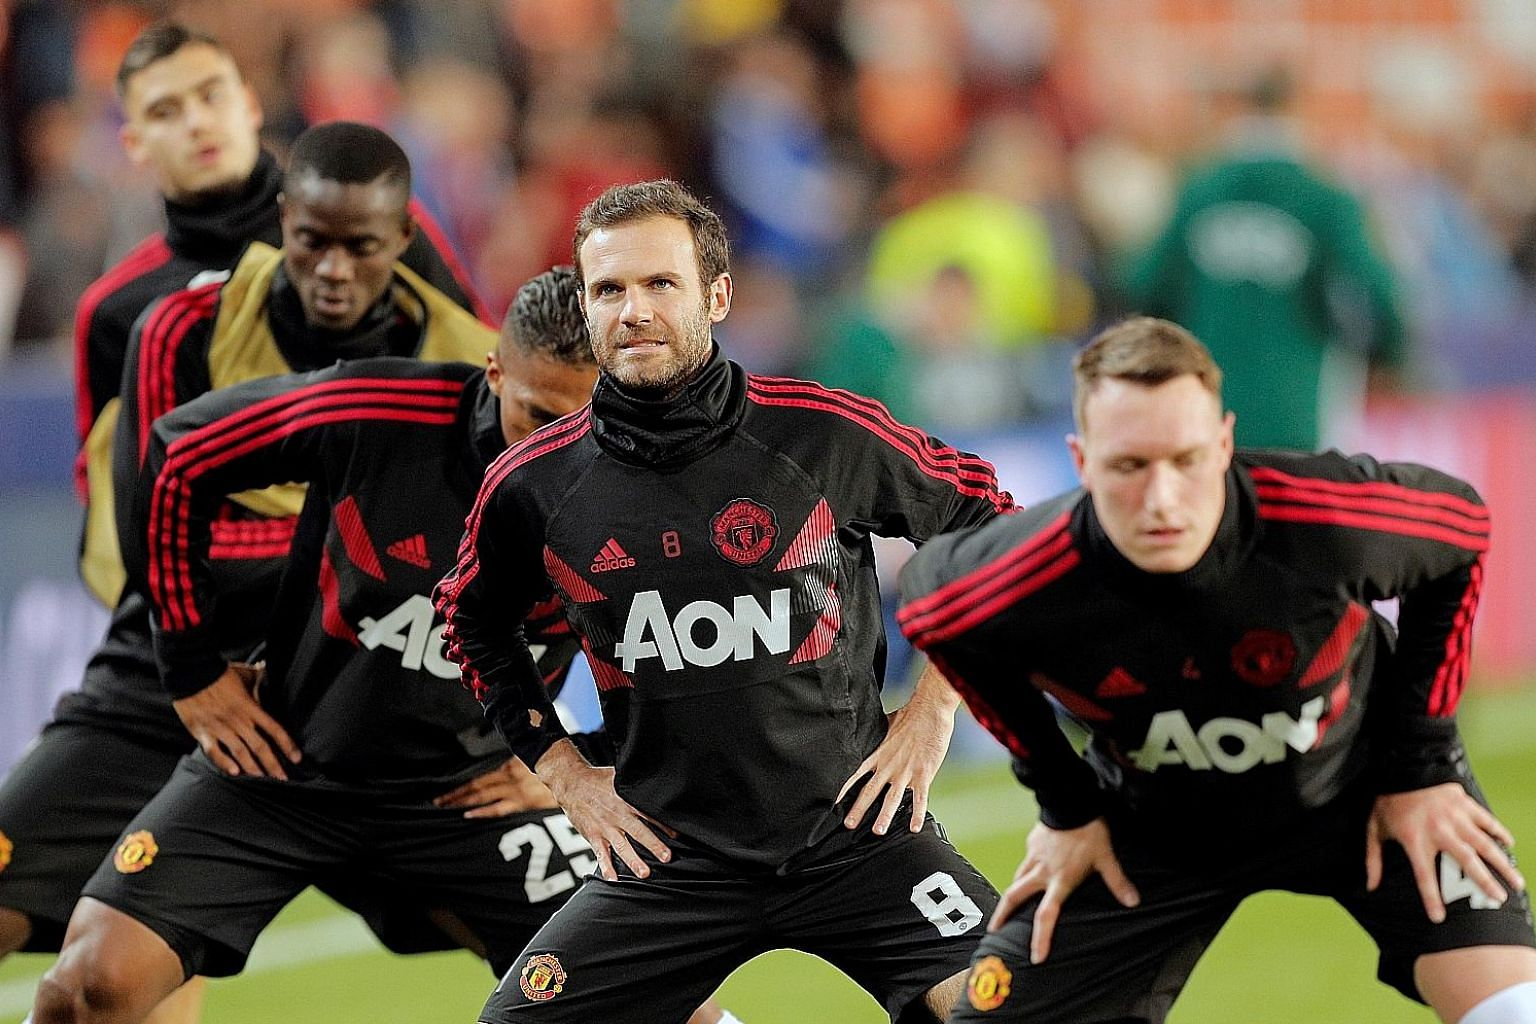 (From right) Phil Jones, Juan Mata and Antonio Valencia warming up before Manchester United's Champions League match against Valencia. Spurred by the arrival of caretaker manager Ole Gunnar Solskjaer, the team have a good chance to close the gap on t